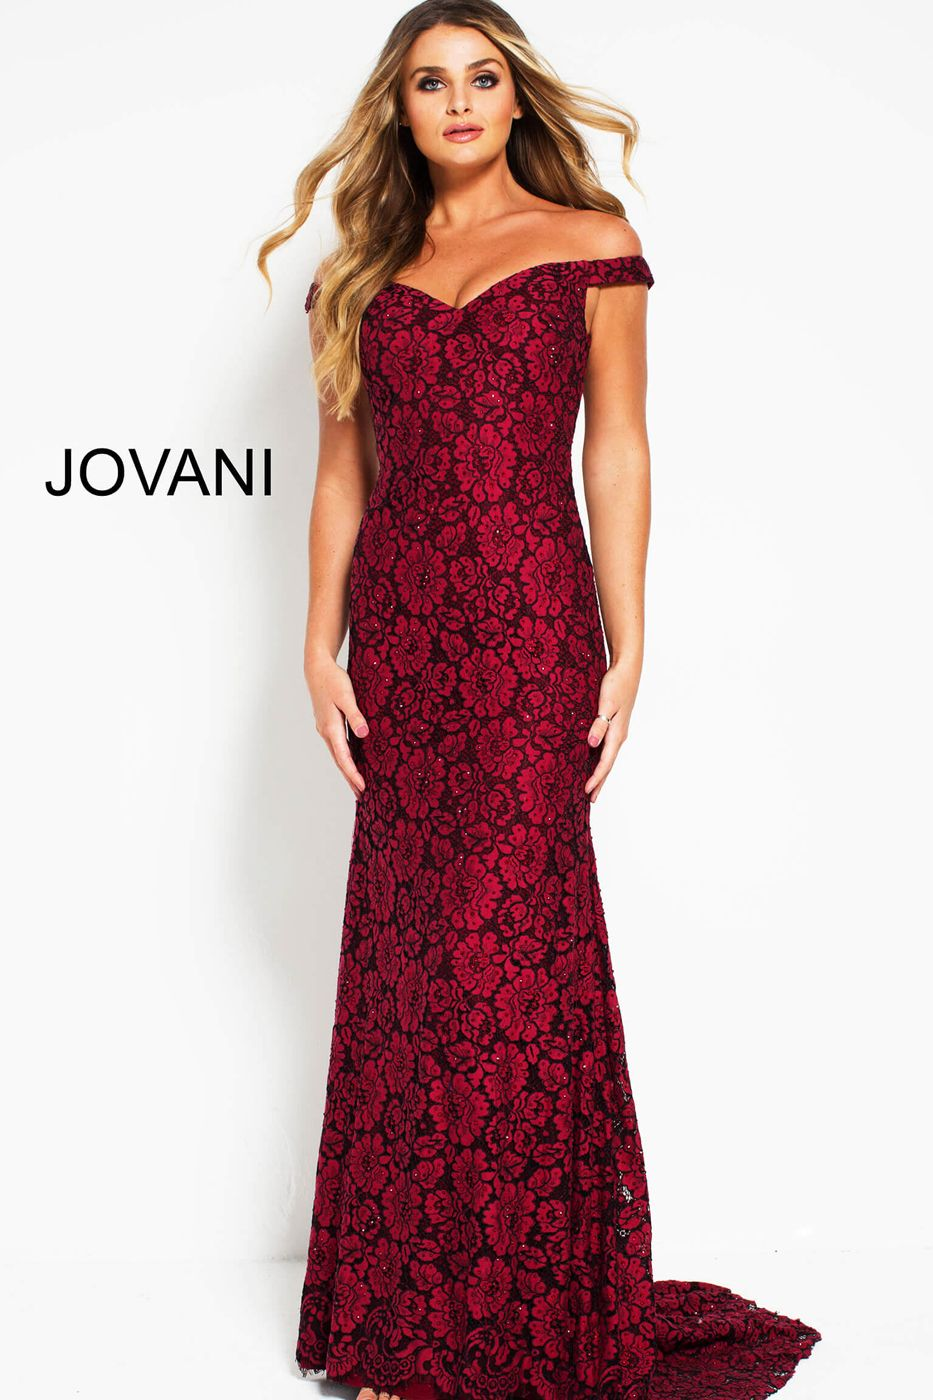 a1be8c5519e5d6 This Jovani 53208 burgundy evening gown features a column silhouette in  beaded floral lace, with an off-the-shoulder sweetheart neckline and court  train.